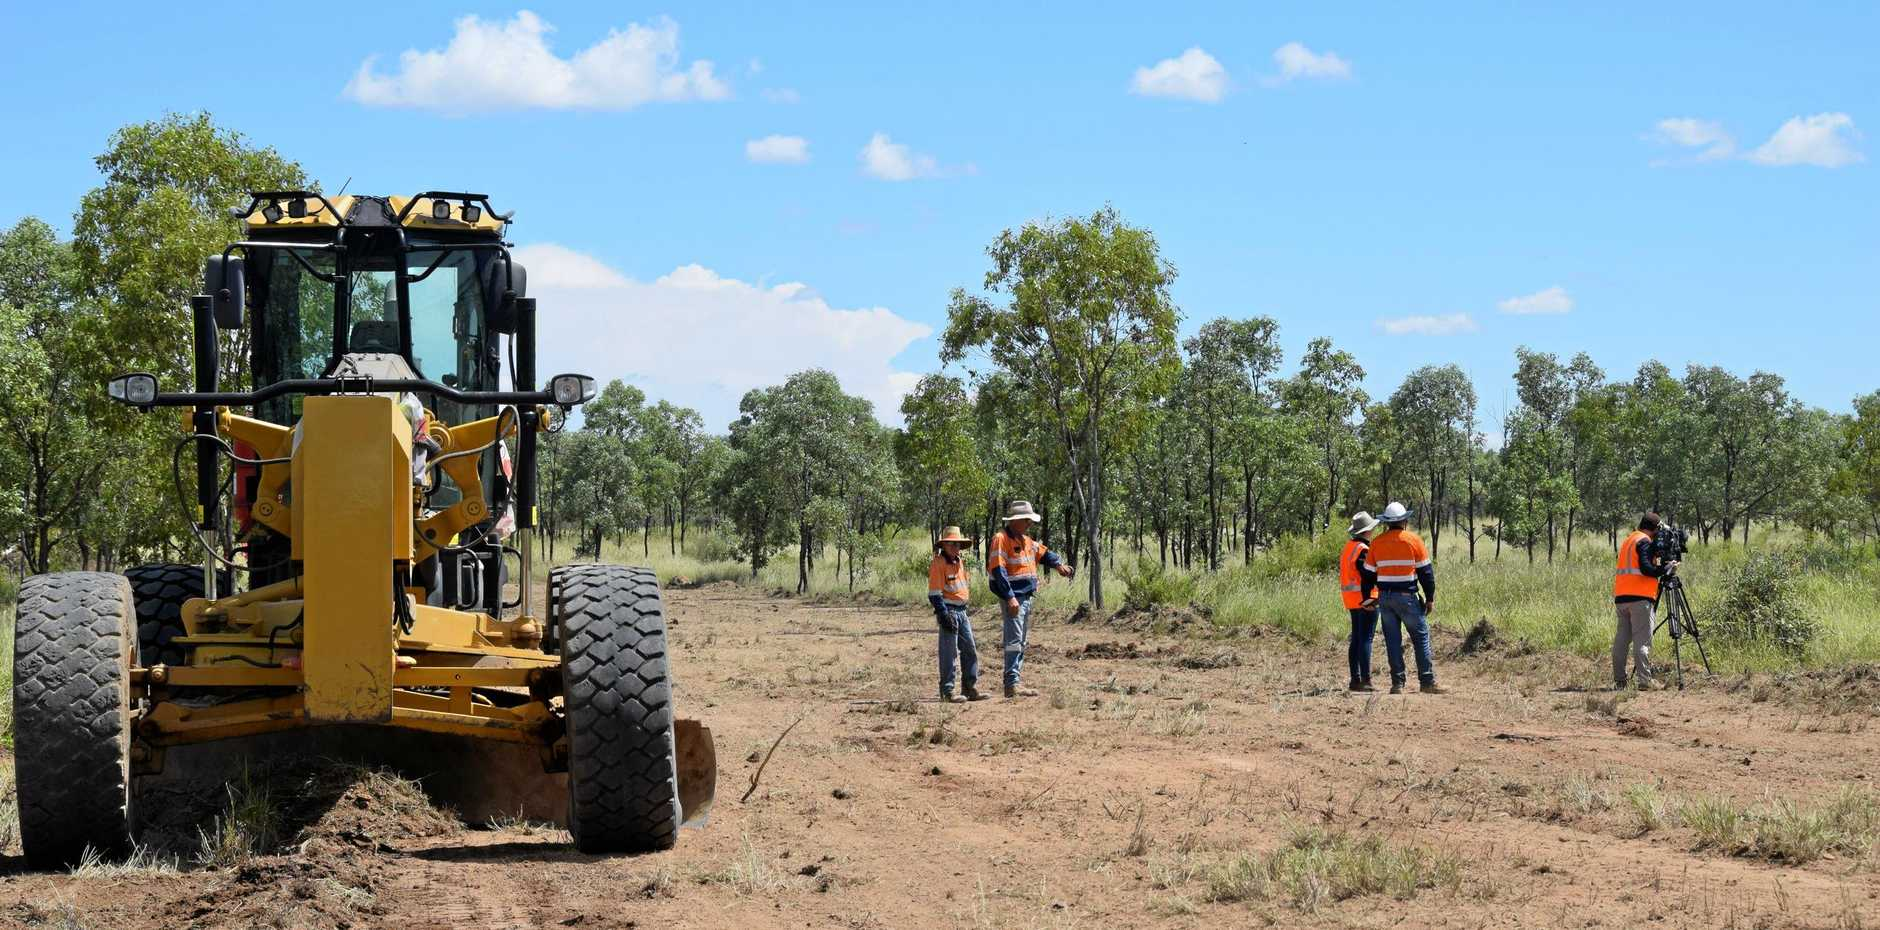 Work has begun on road construction at Adani Carmichael site